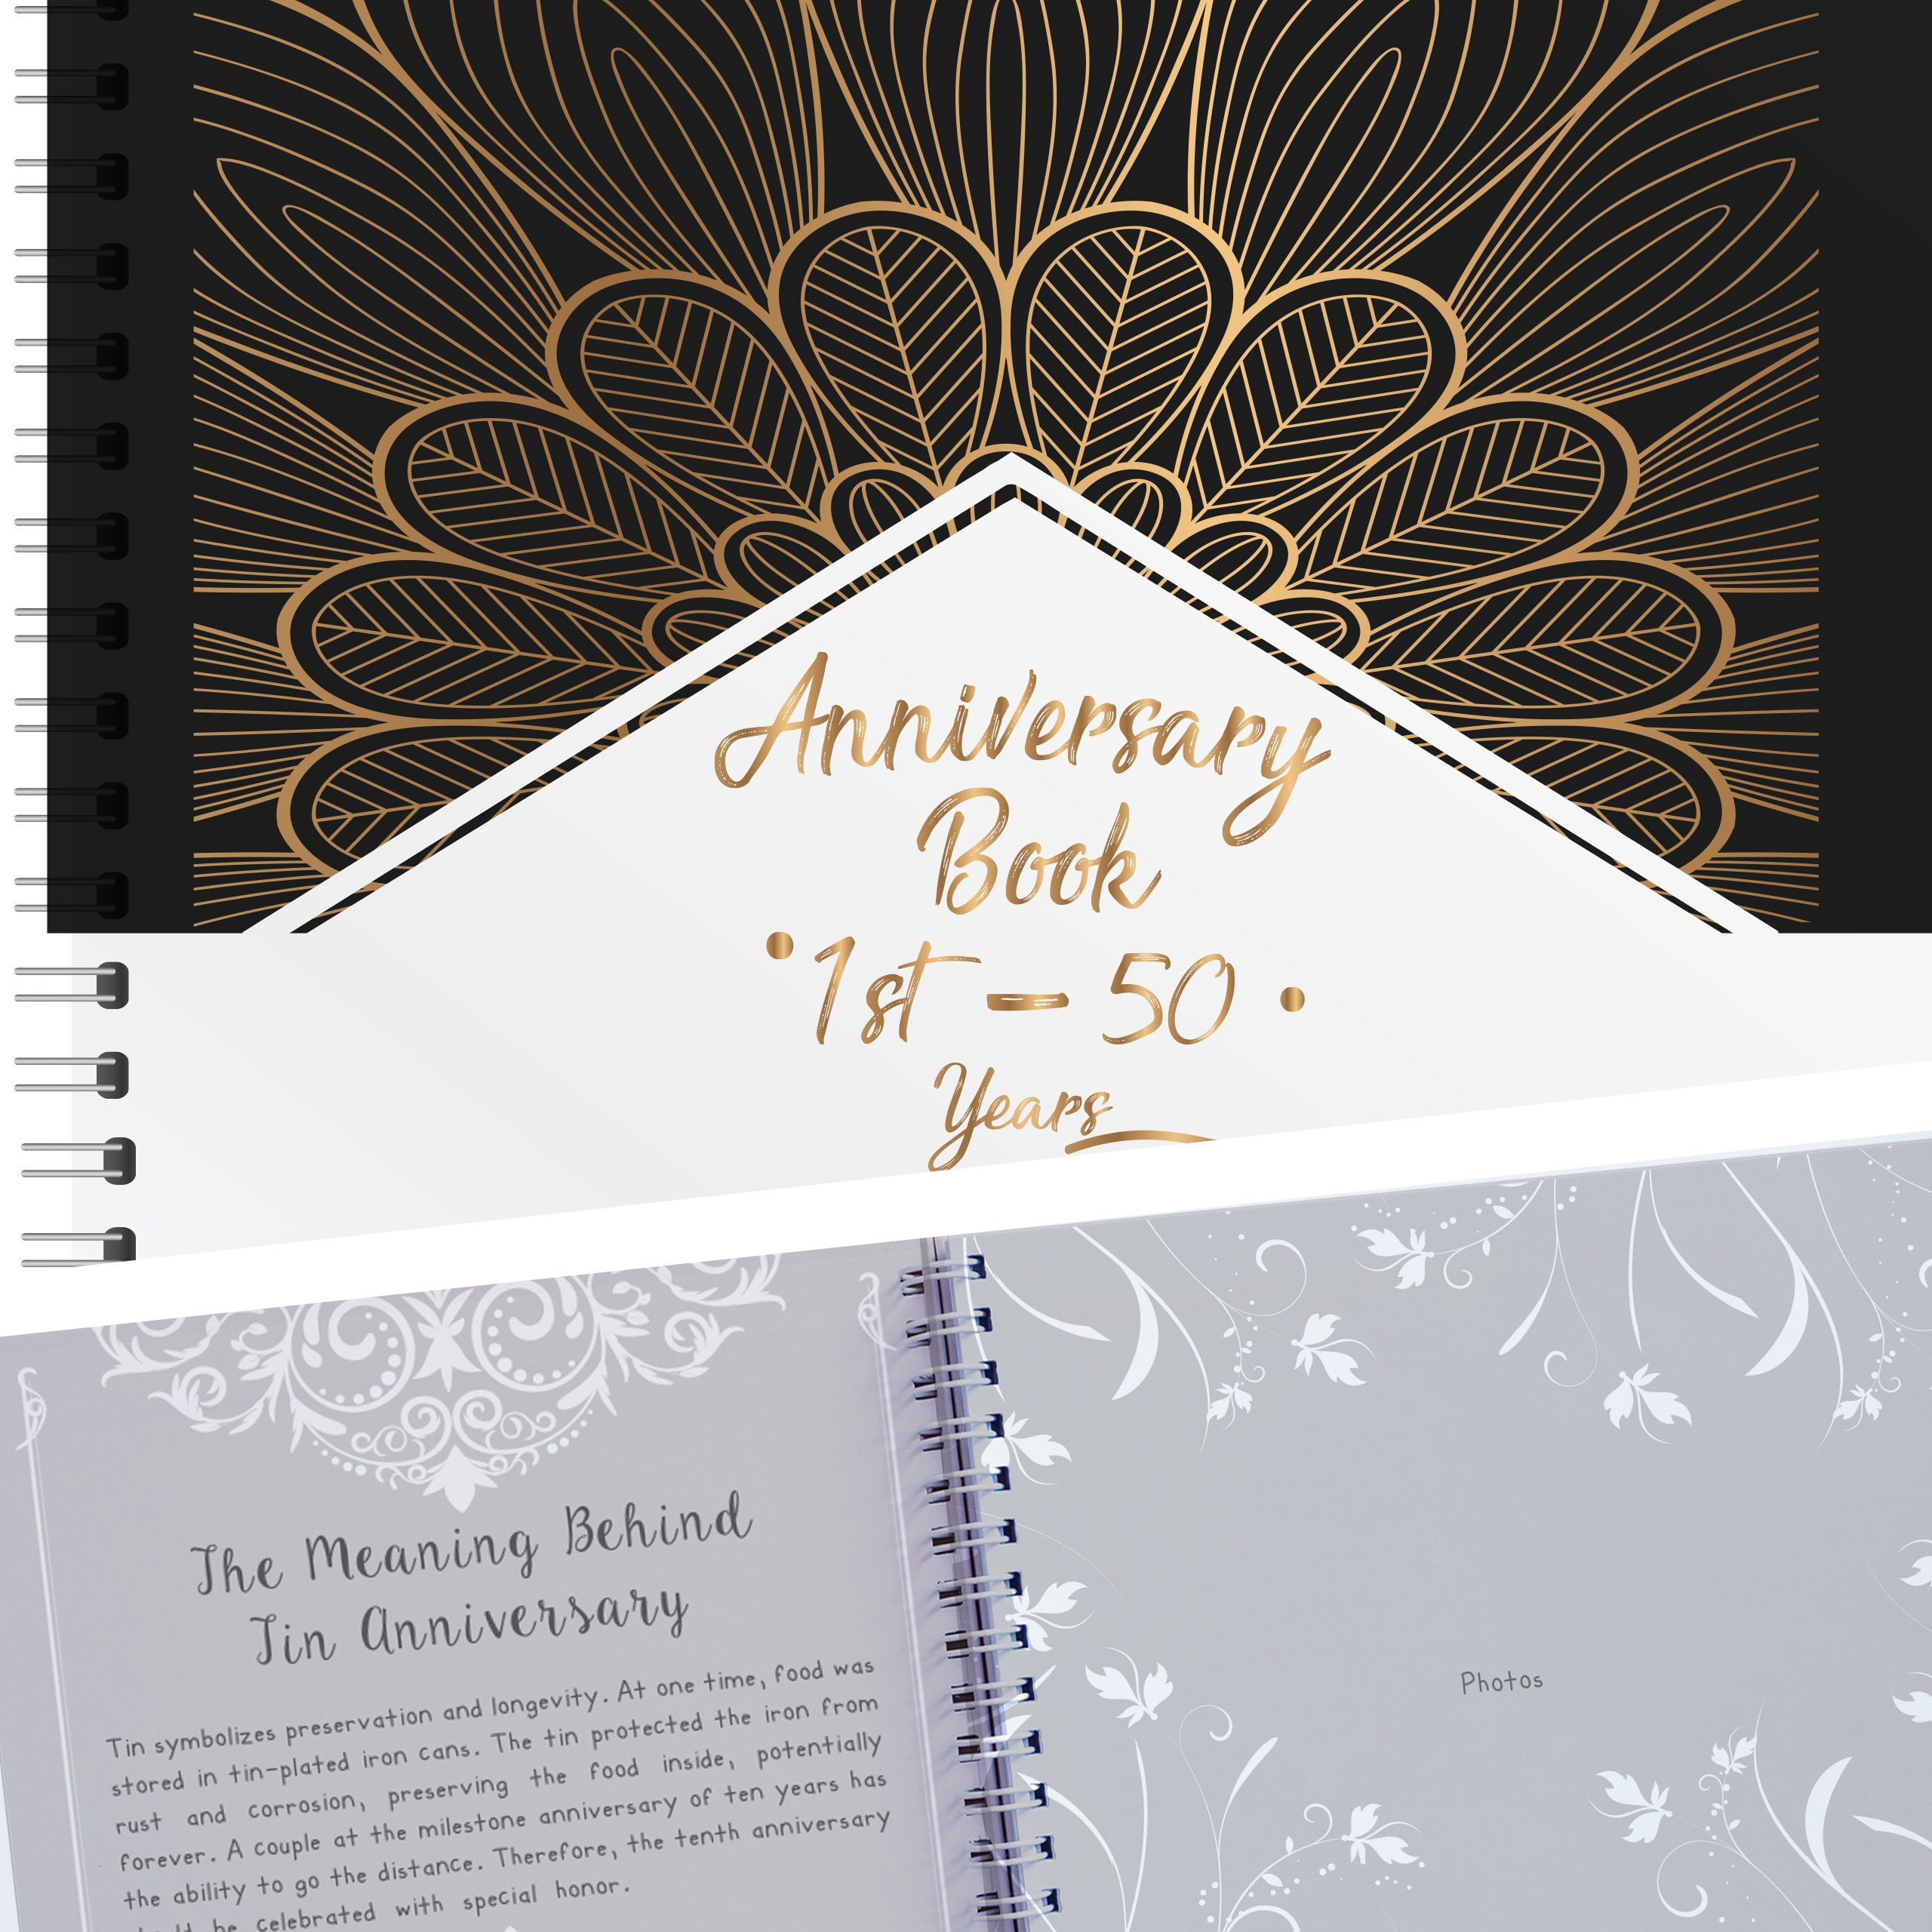 Anniversary Book - A Hardcover Wedding Memory Album To Document Wedding Anniversaries From The 1st To 50th Year - Unique Couple Gifts For Him & Her - Personalized Marriage Presents For Husband & Wife by Unconditional Rosie